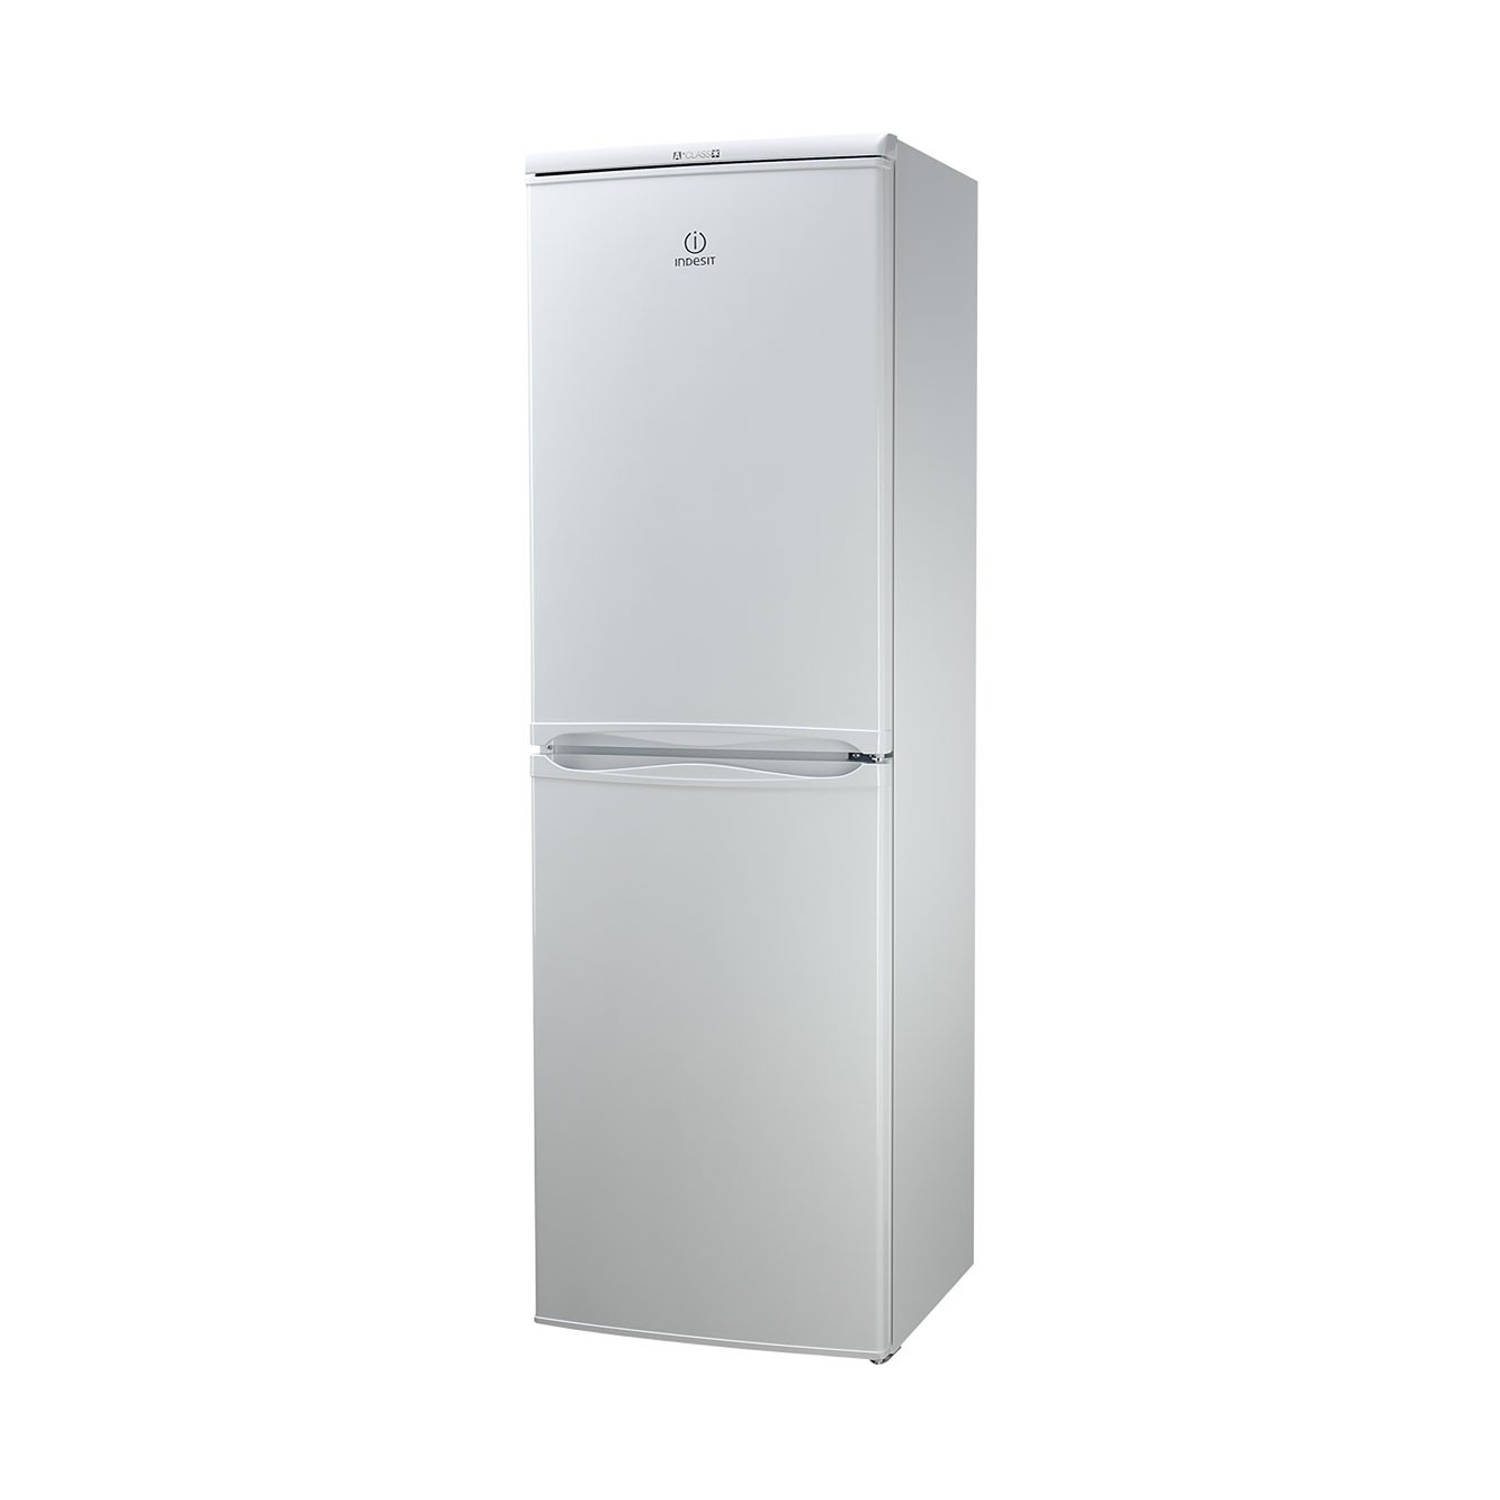 Indesit CAA 55 koelvriescombinaties - Wit